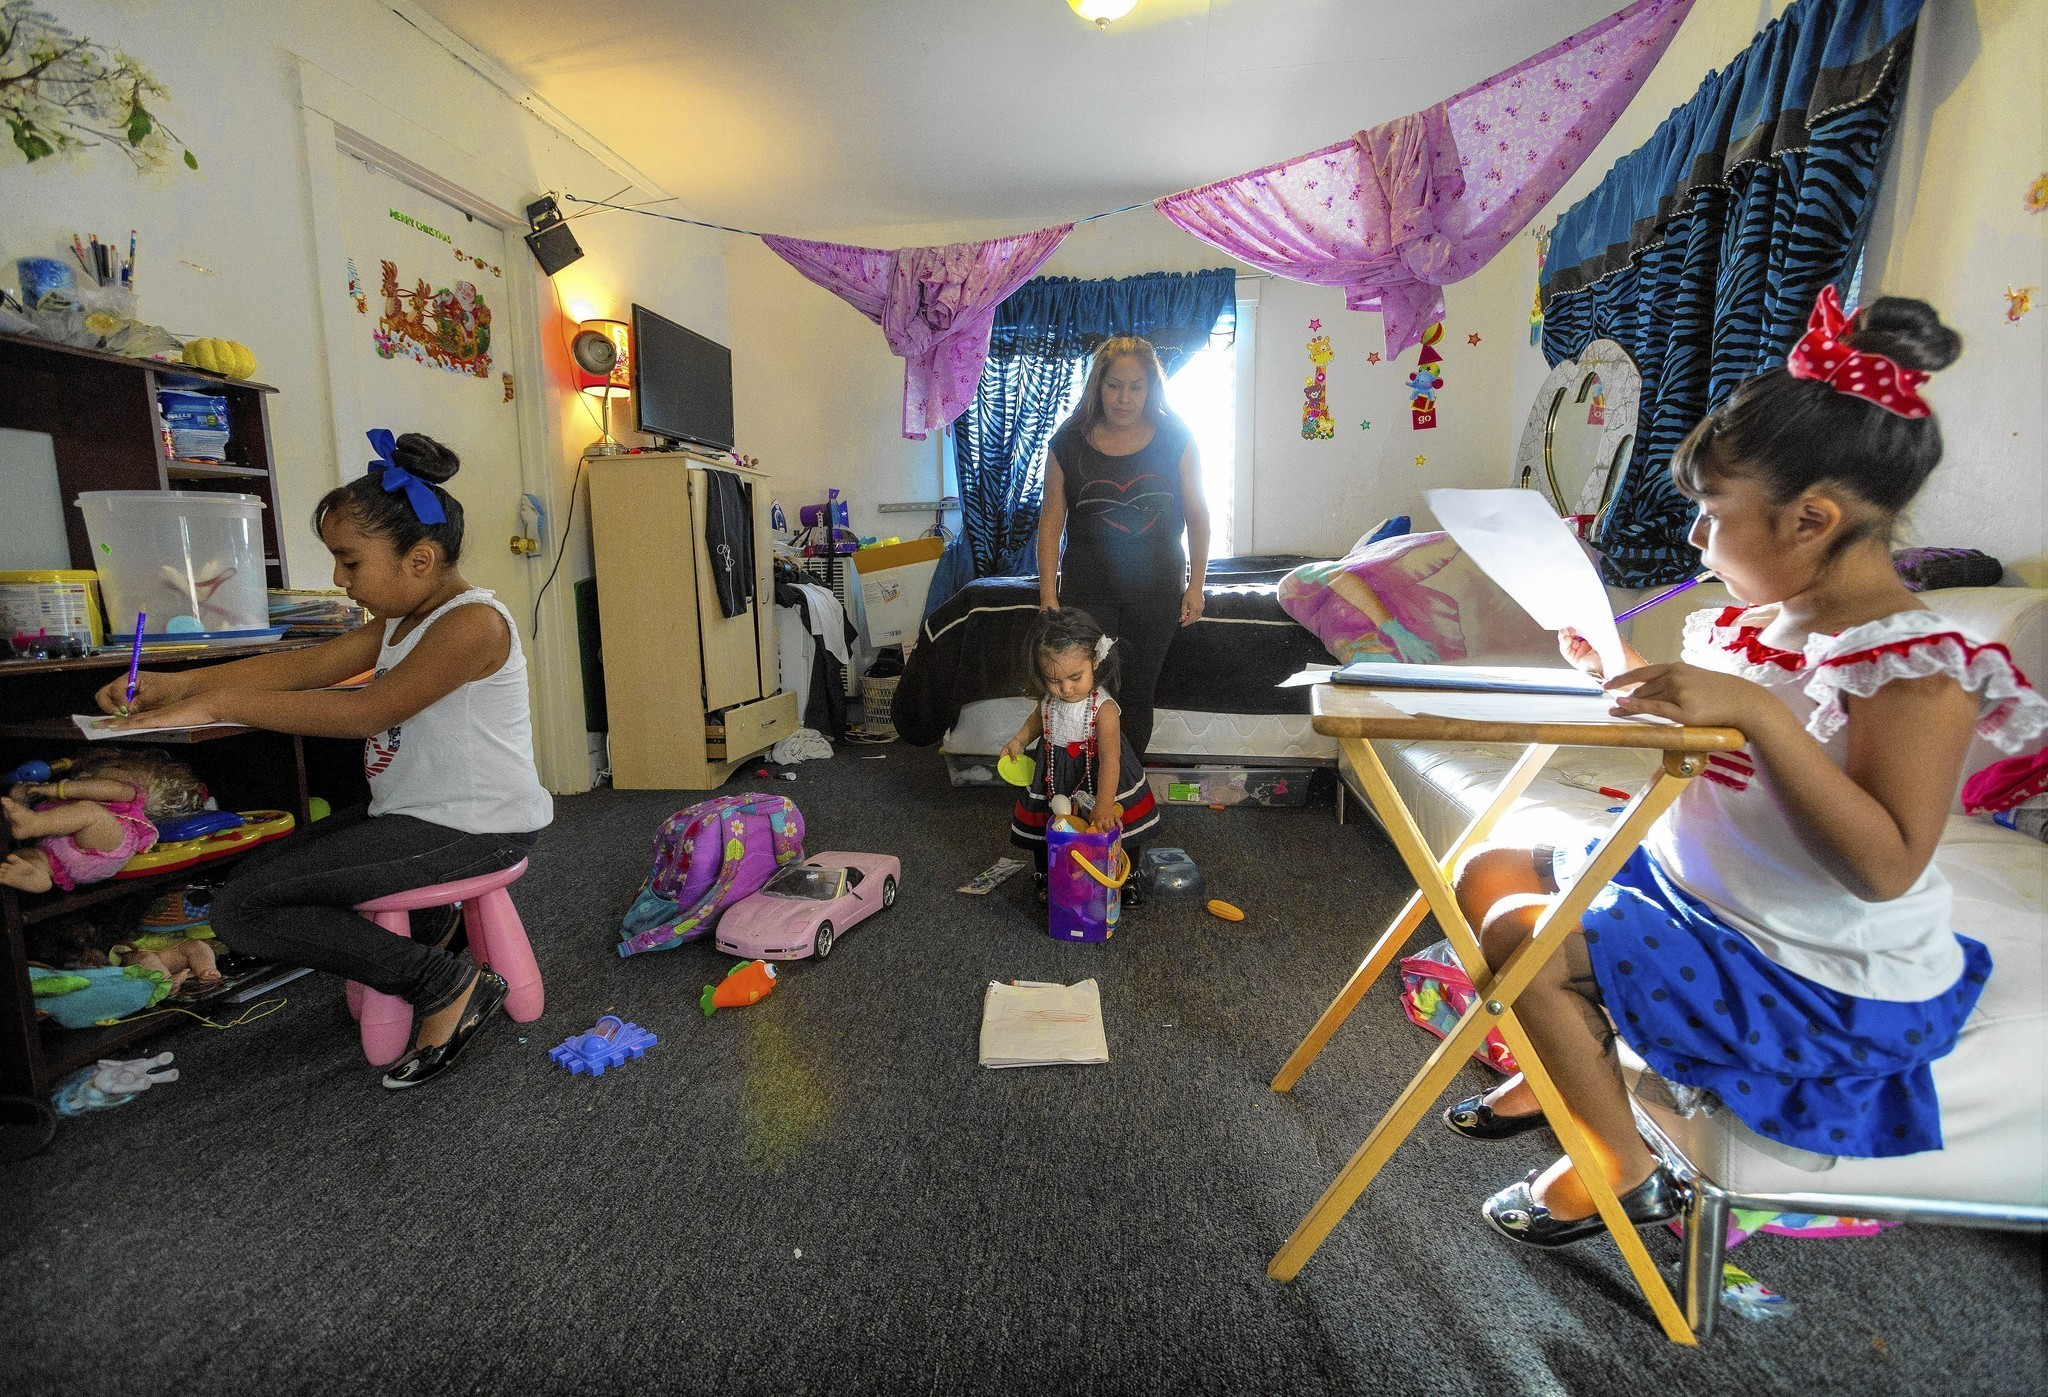 Sisters Ashley Orosco, left, and Lindsay study as their mom, Melina Vasquez, cares for Alexa in a rent-controlled Echo Park complex where all residents are being evicted.